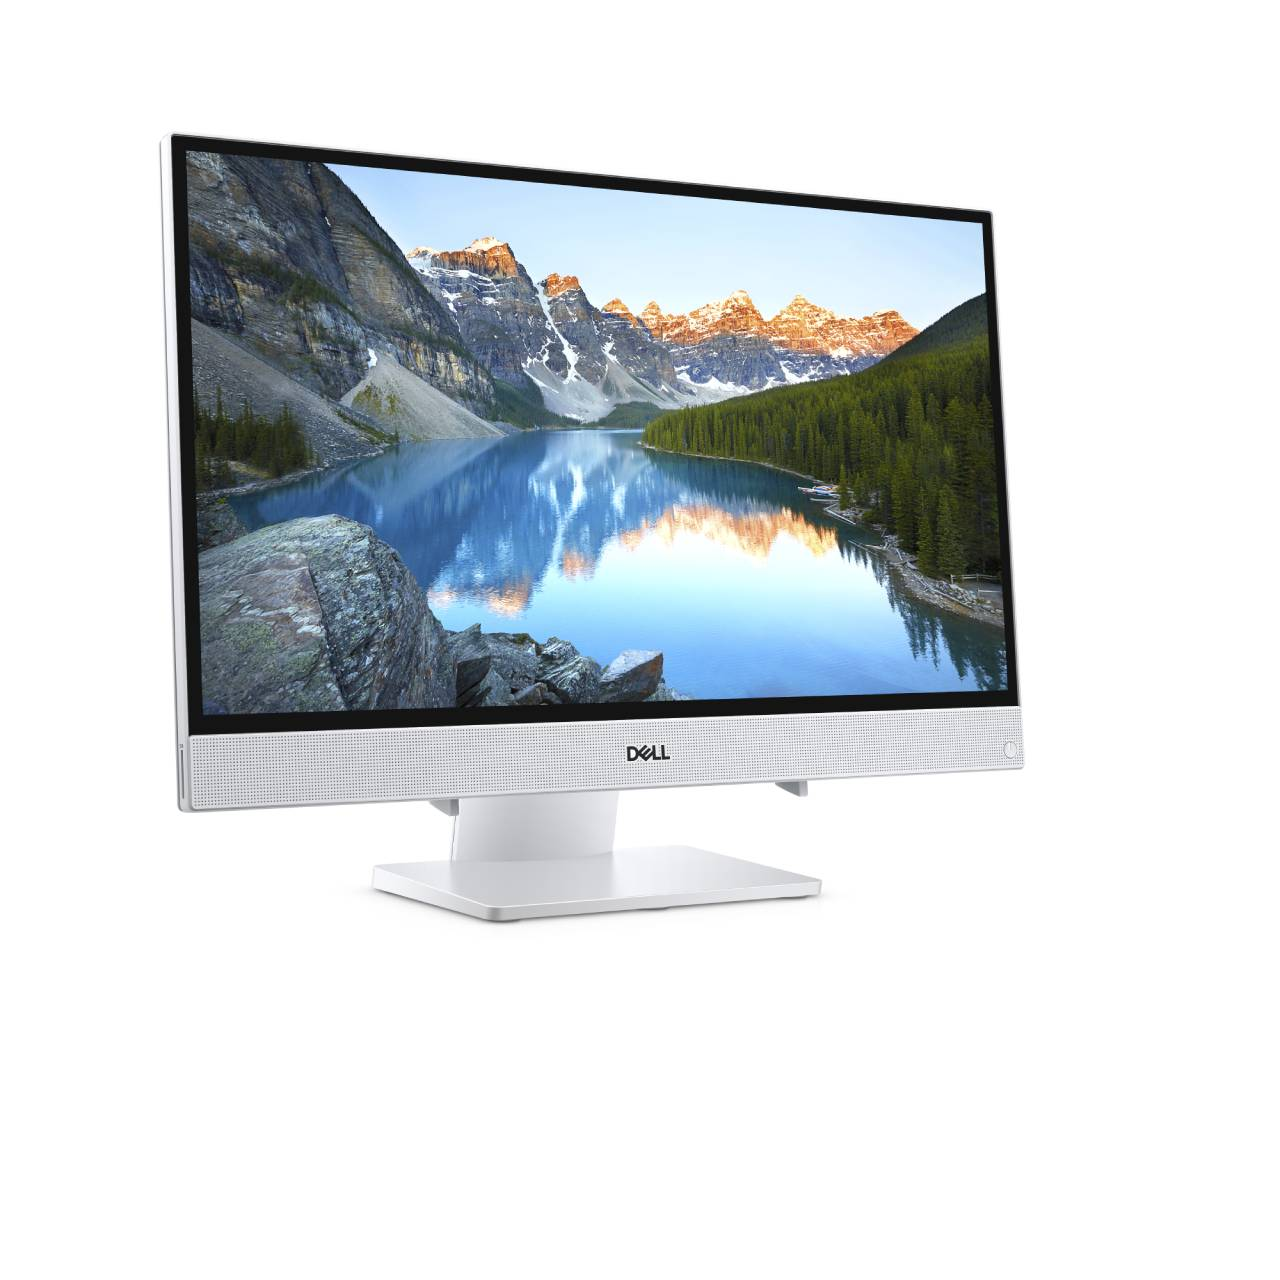 "Dell Inspiron 24 3000 23.8"" FHD All-in-One (Quad i5-8265U / 12GB / 2TB)"